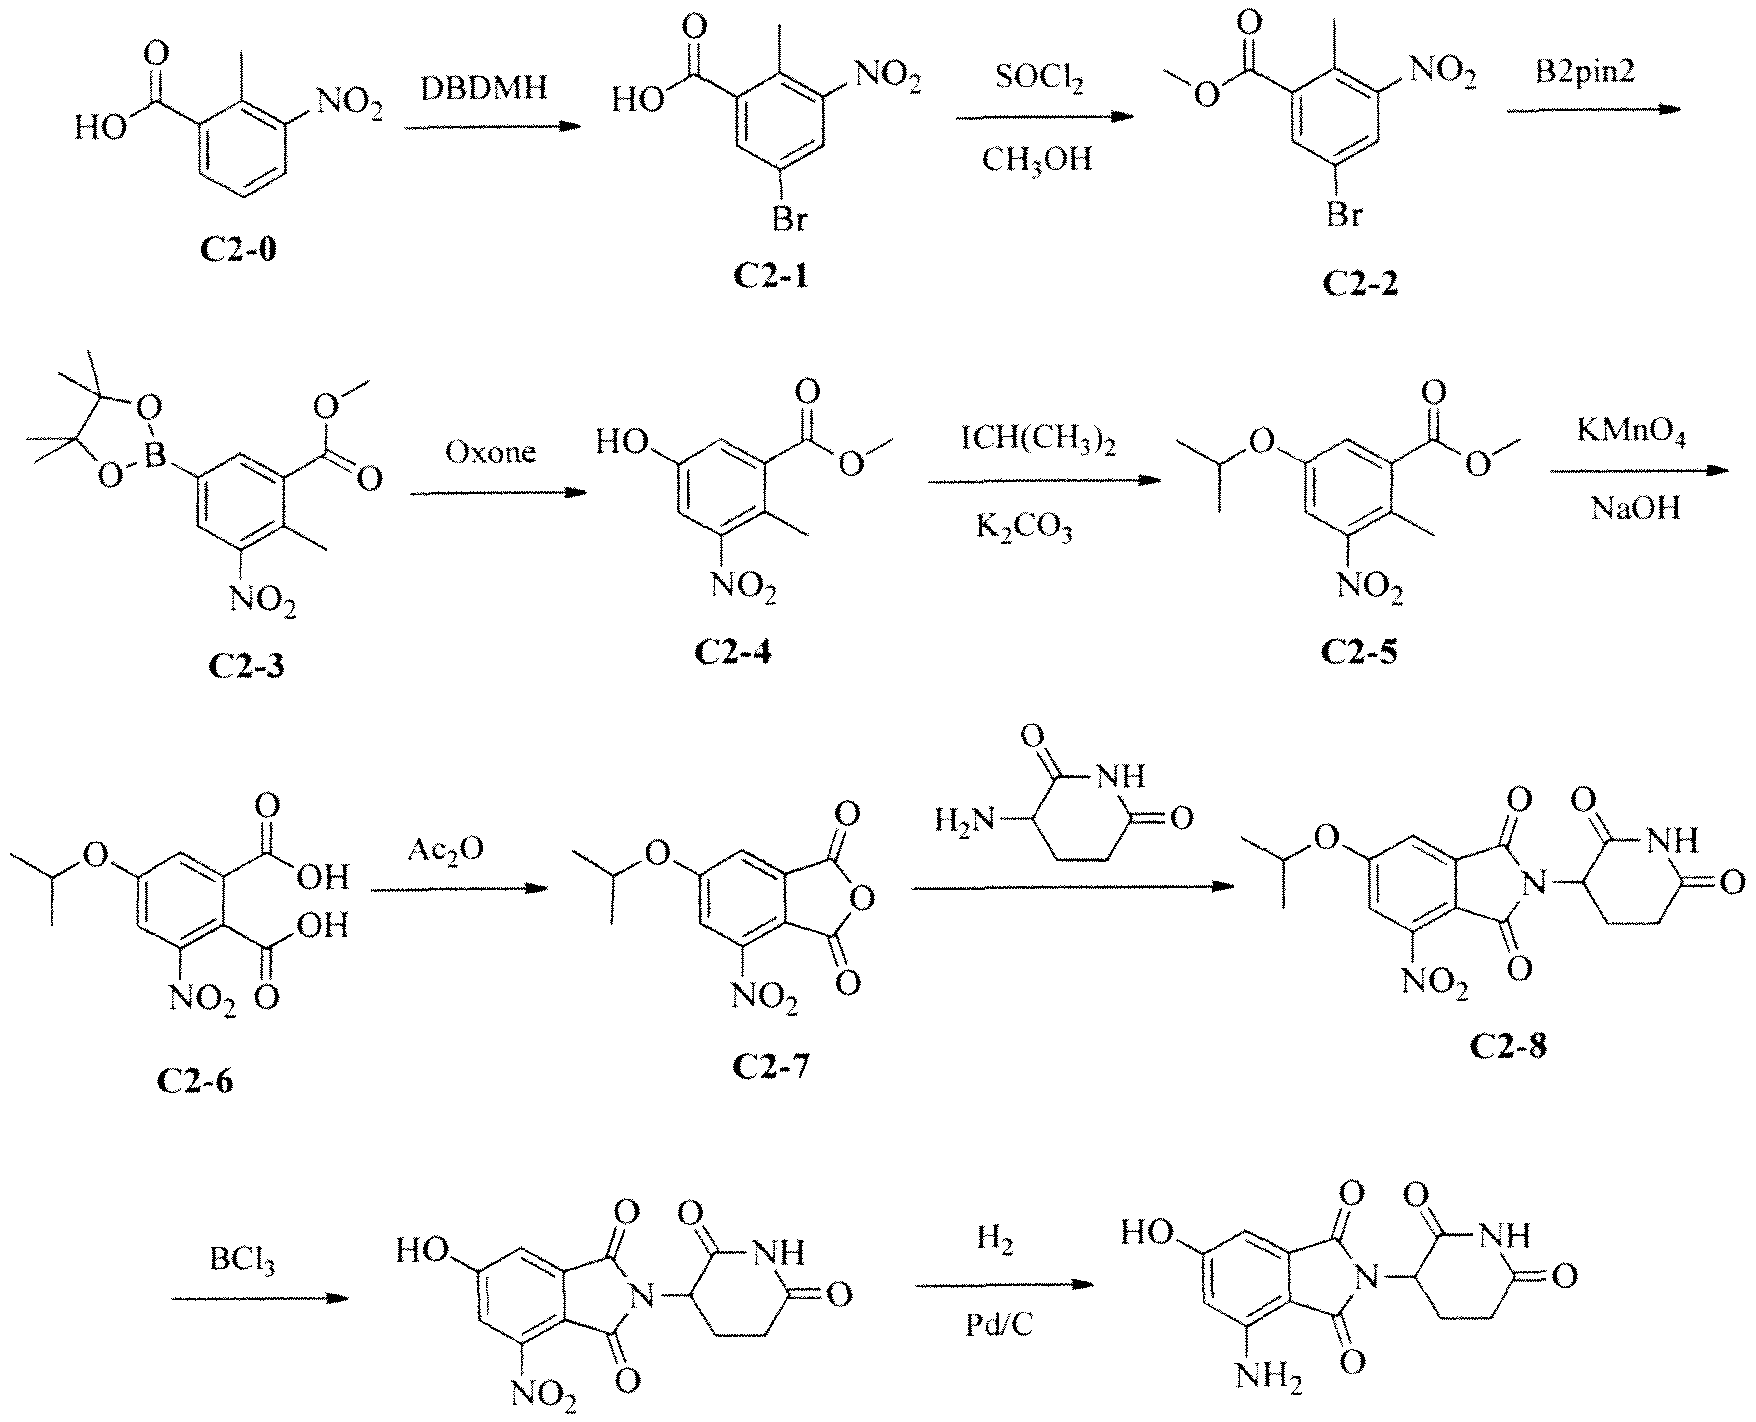 preparation of methyl m nitrobenzoate Methyl m-nitrobenzoate tlc analysis shows it moves more slowly up the plate   important in the synthesis of methyl 3-nitrobenzoate from methyl benzoate.